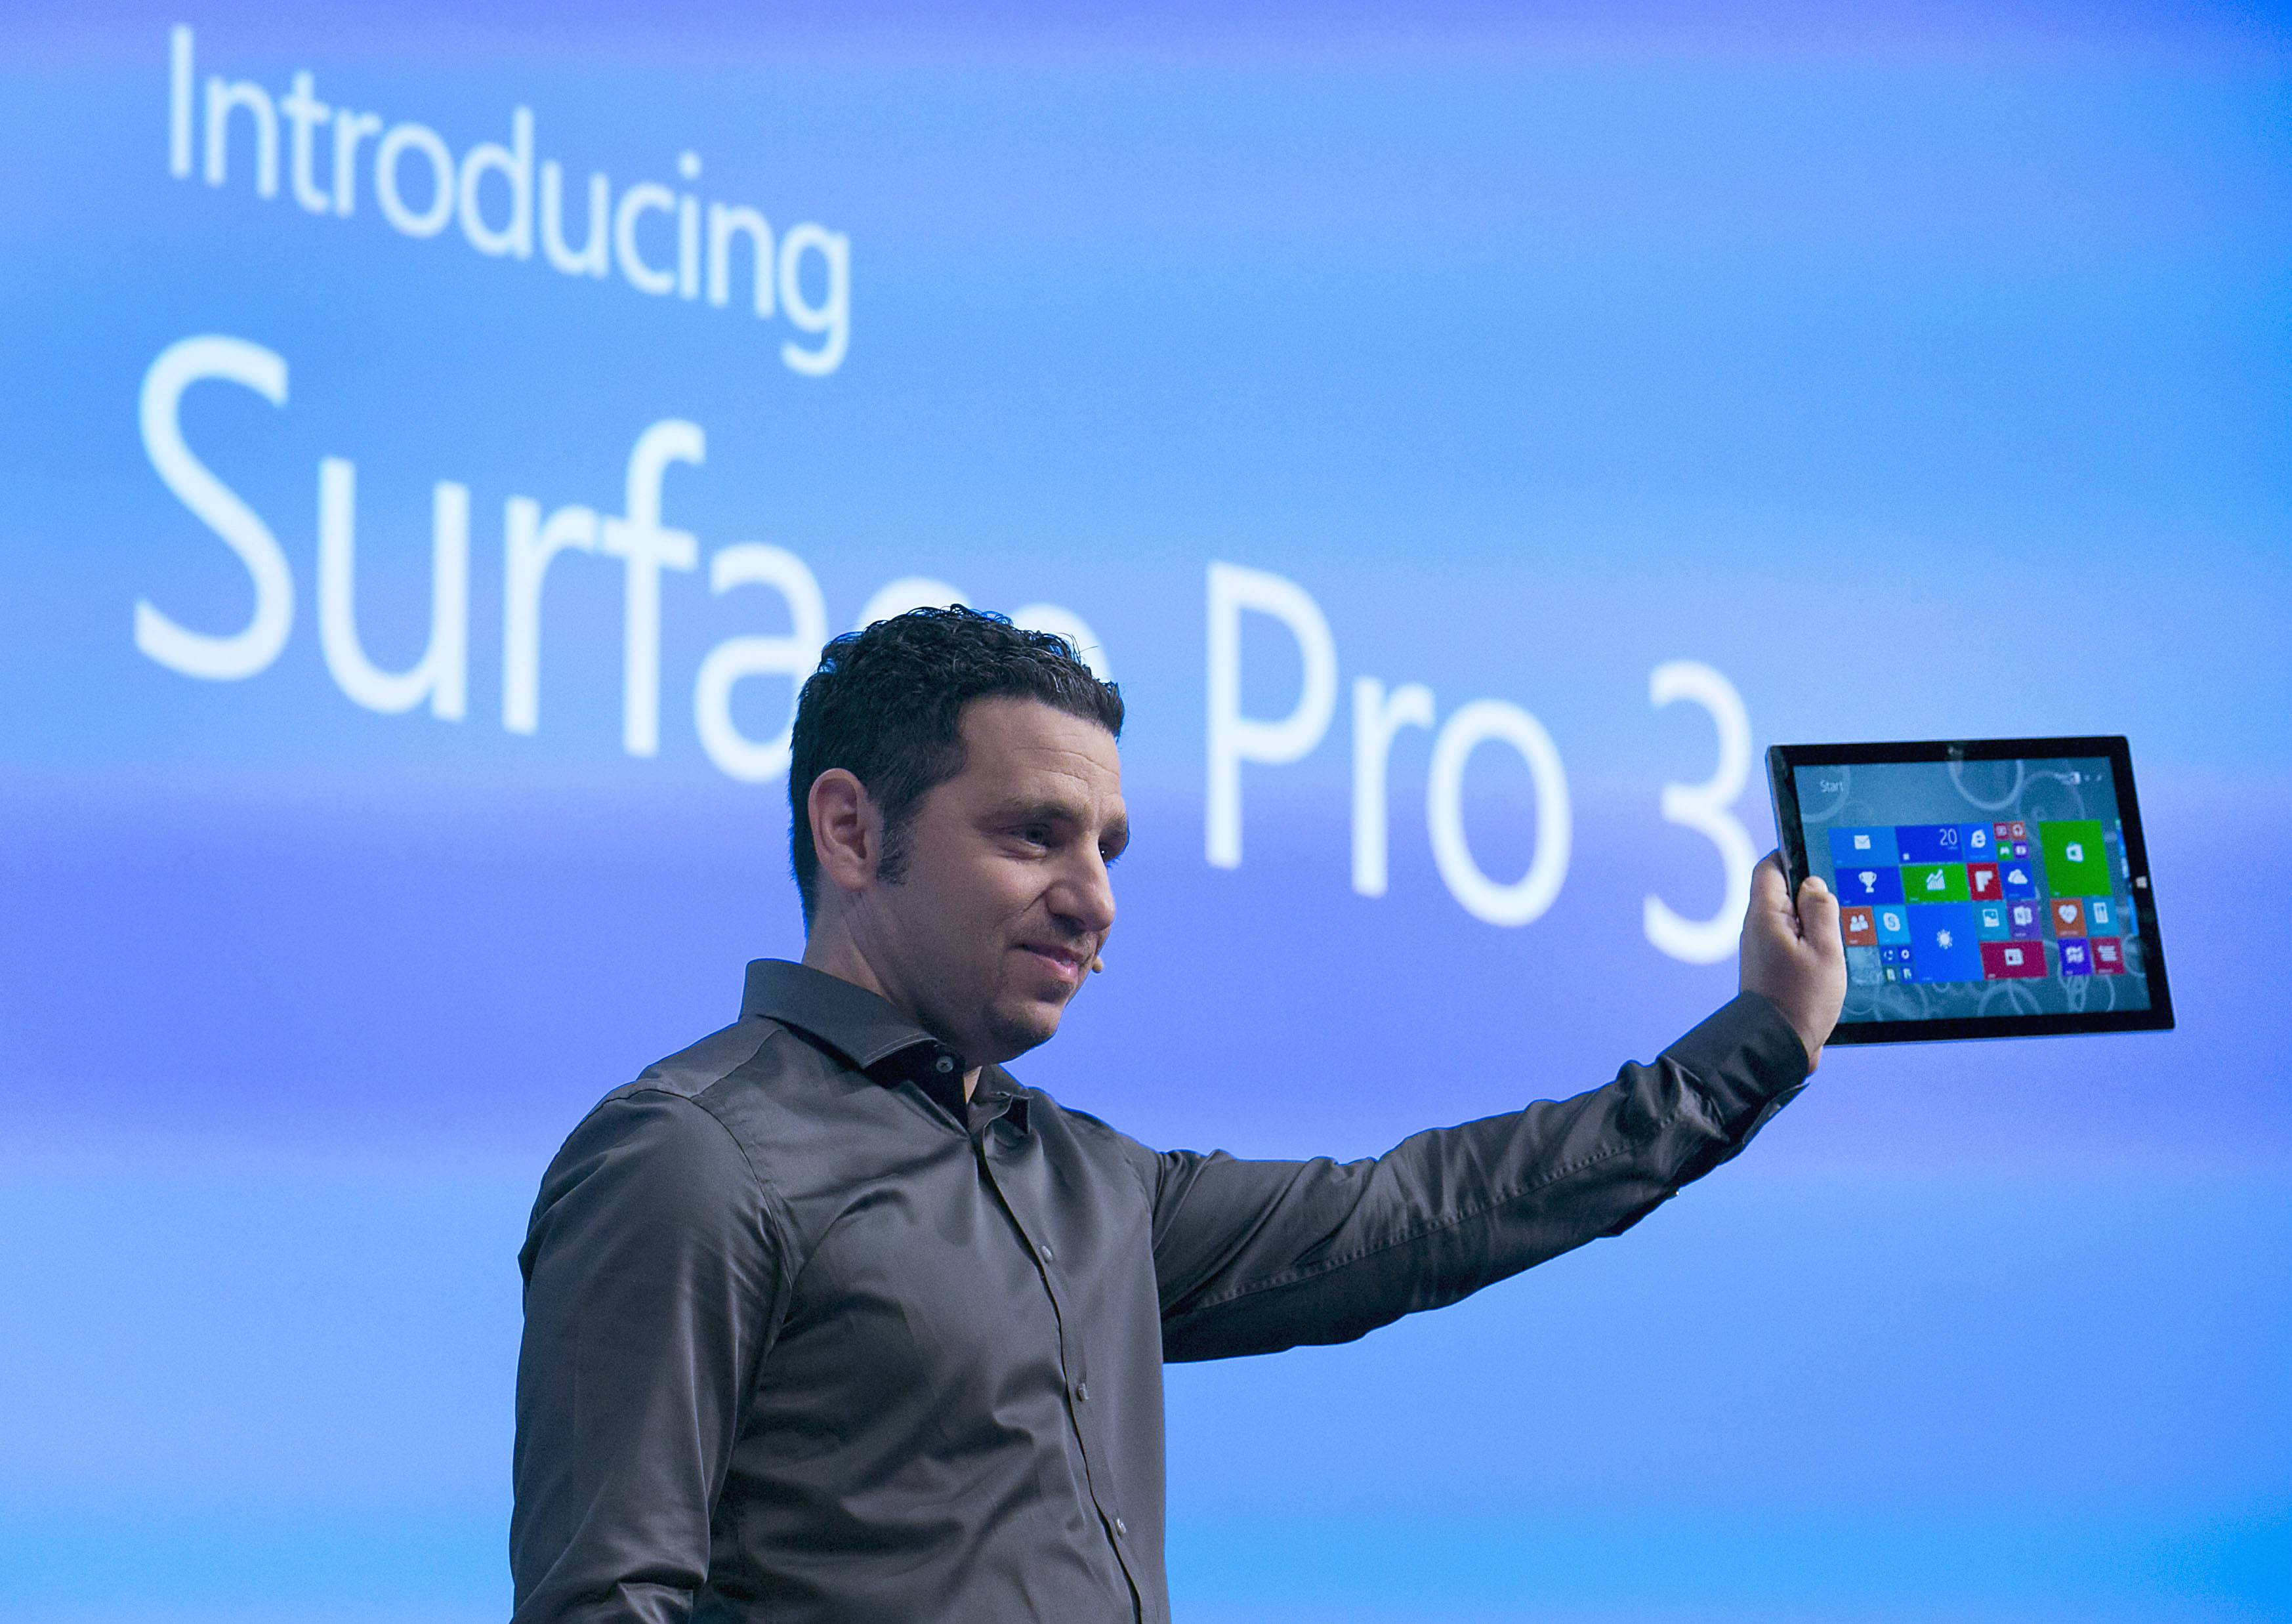 Panos Panay, corporate vice president of Microsoft Corp. Surface, displays the Surface Pro 3 during an event in New York. Microsoft Corp. introduced a larger-screen Surface tablet that is thinner and faster than the previous Surface Pro model, its latest attempt to gain share in the market dominated by Google Inc. and Apple Inc.